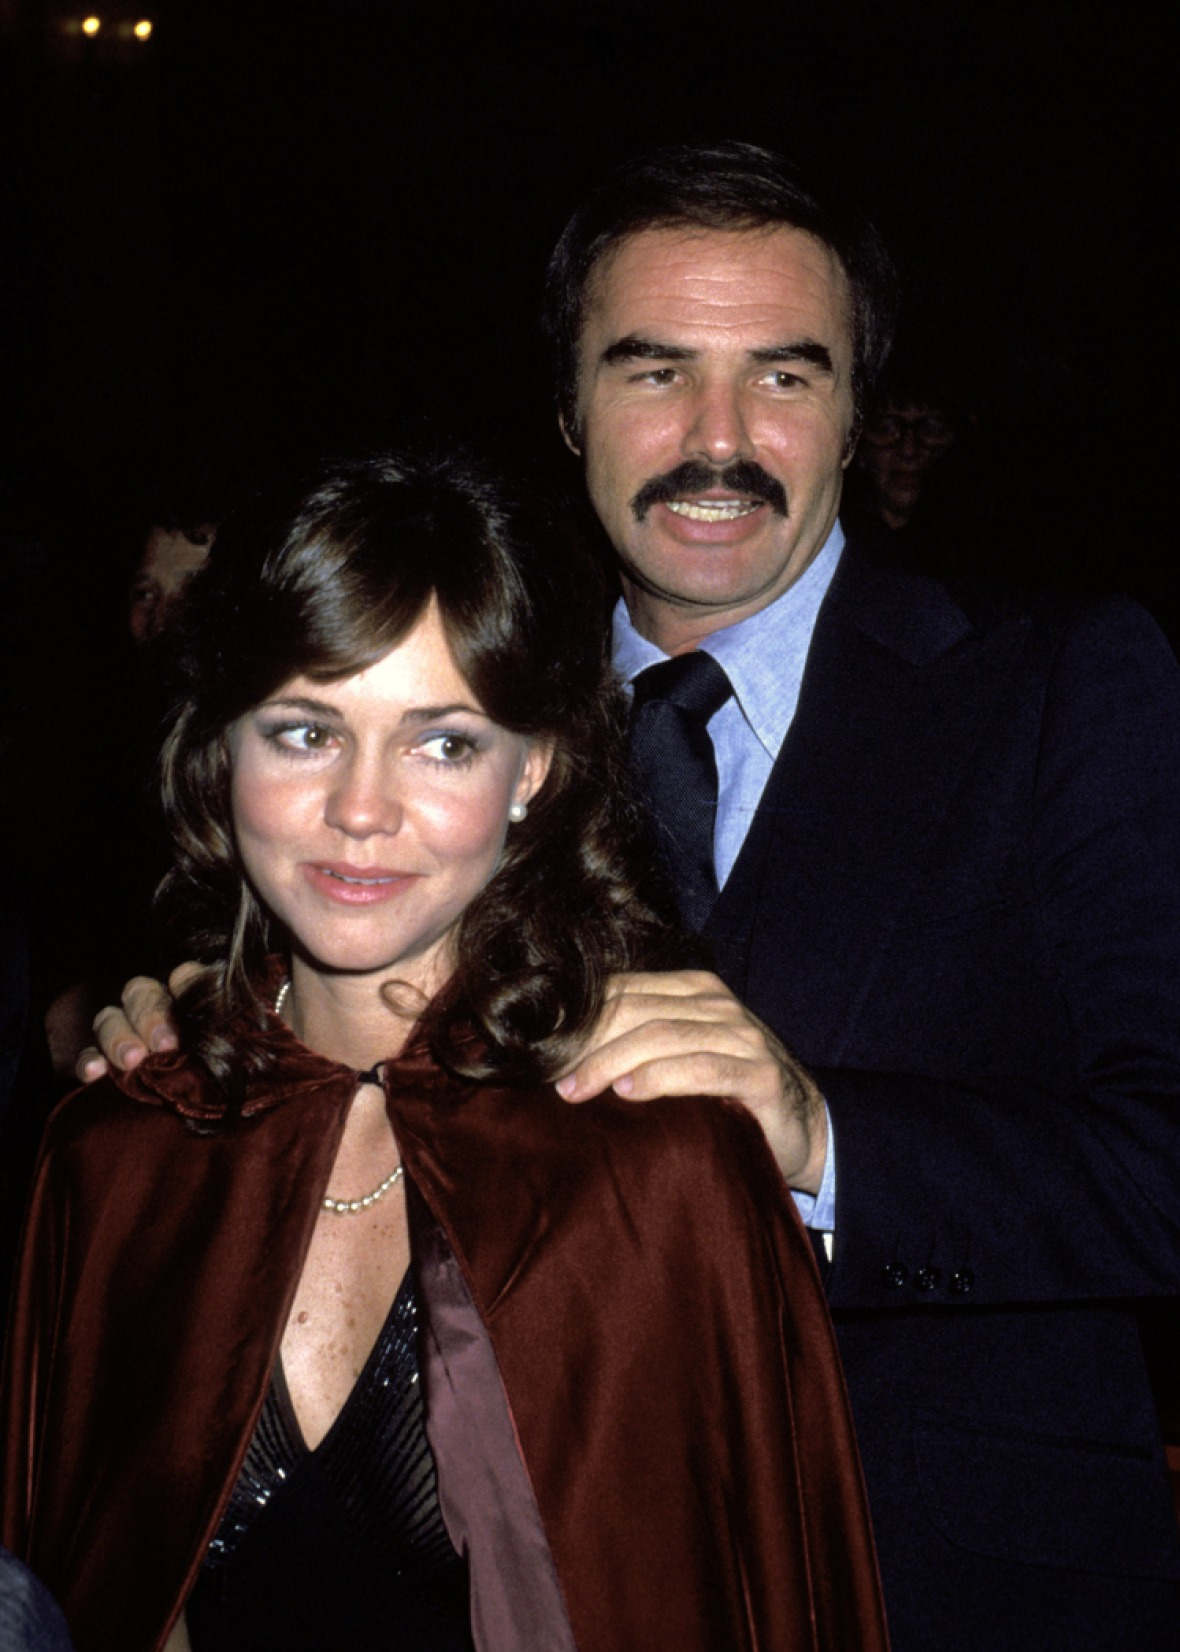 burt and sally. (photo credit: getty images)